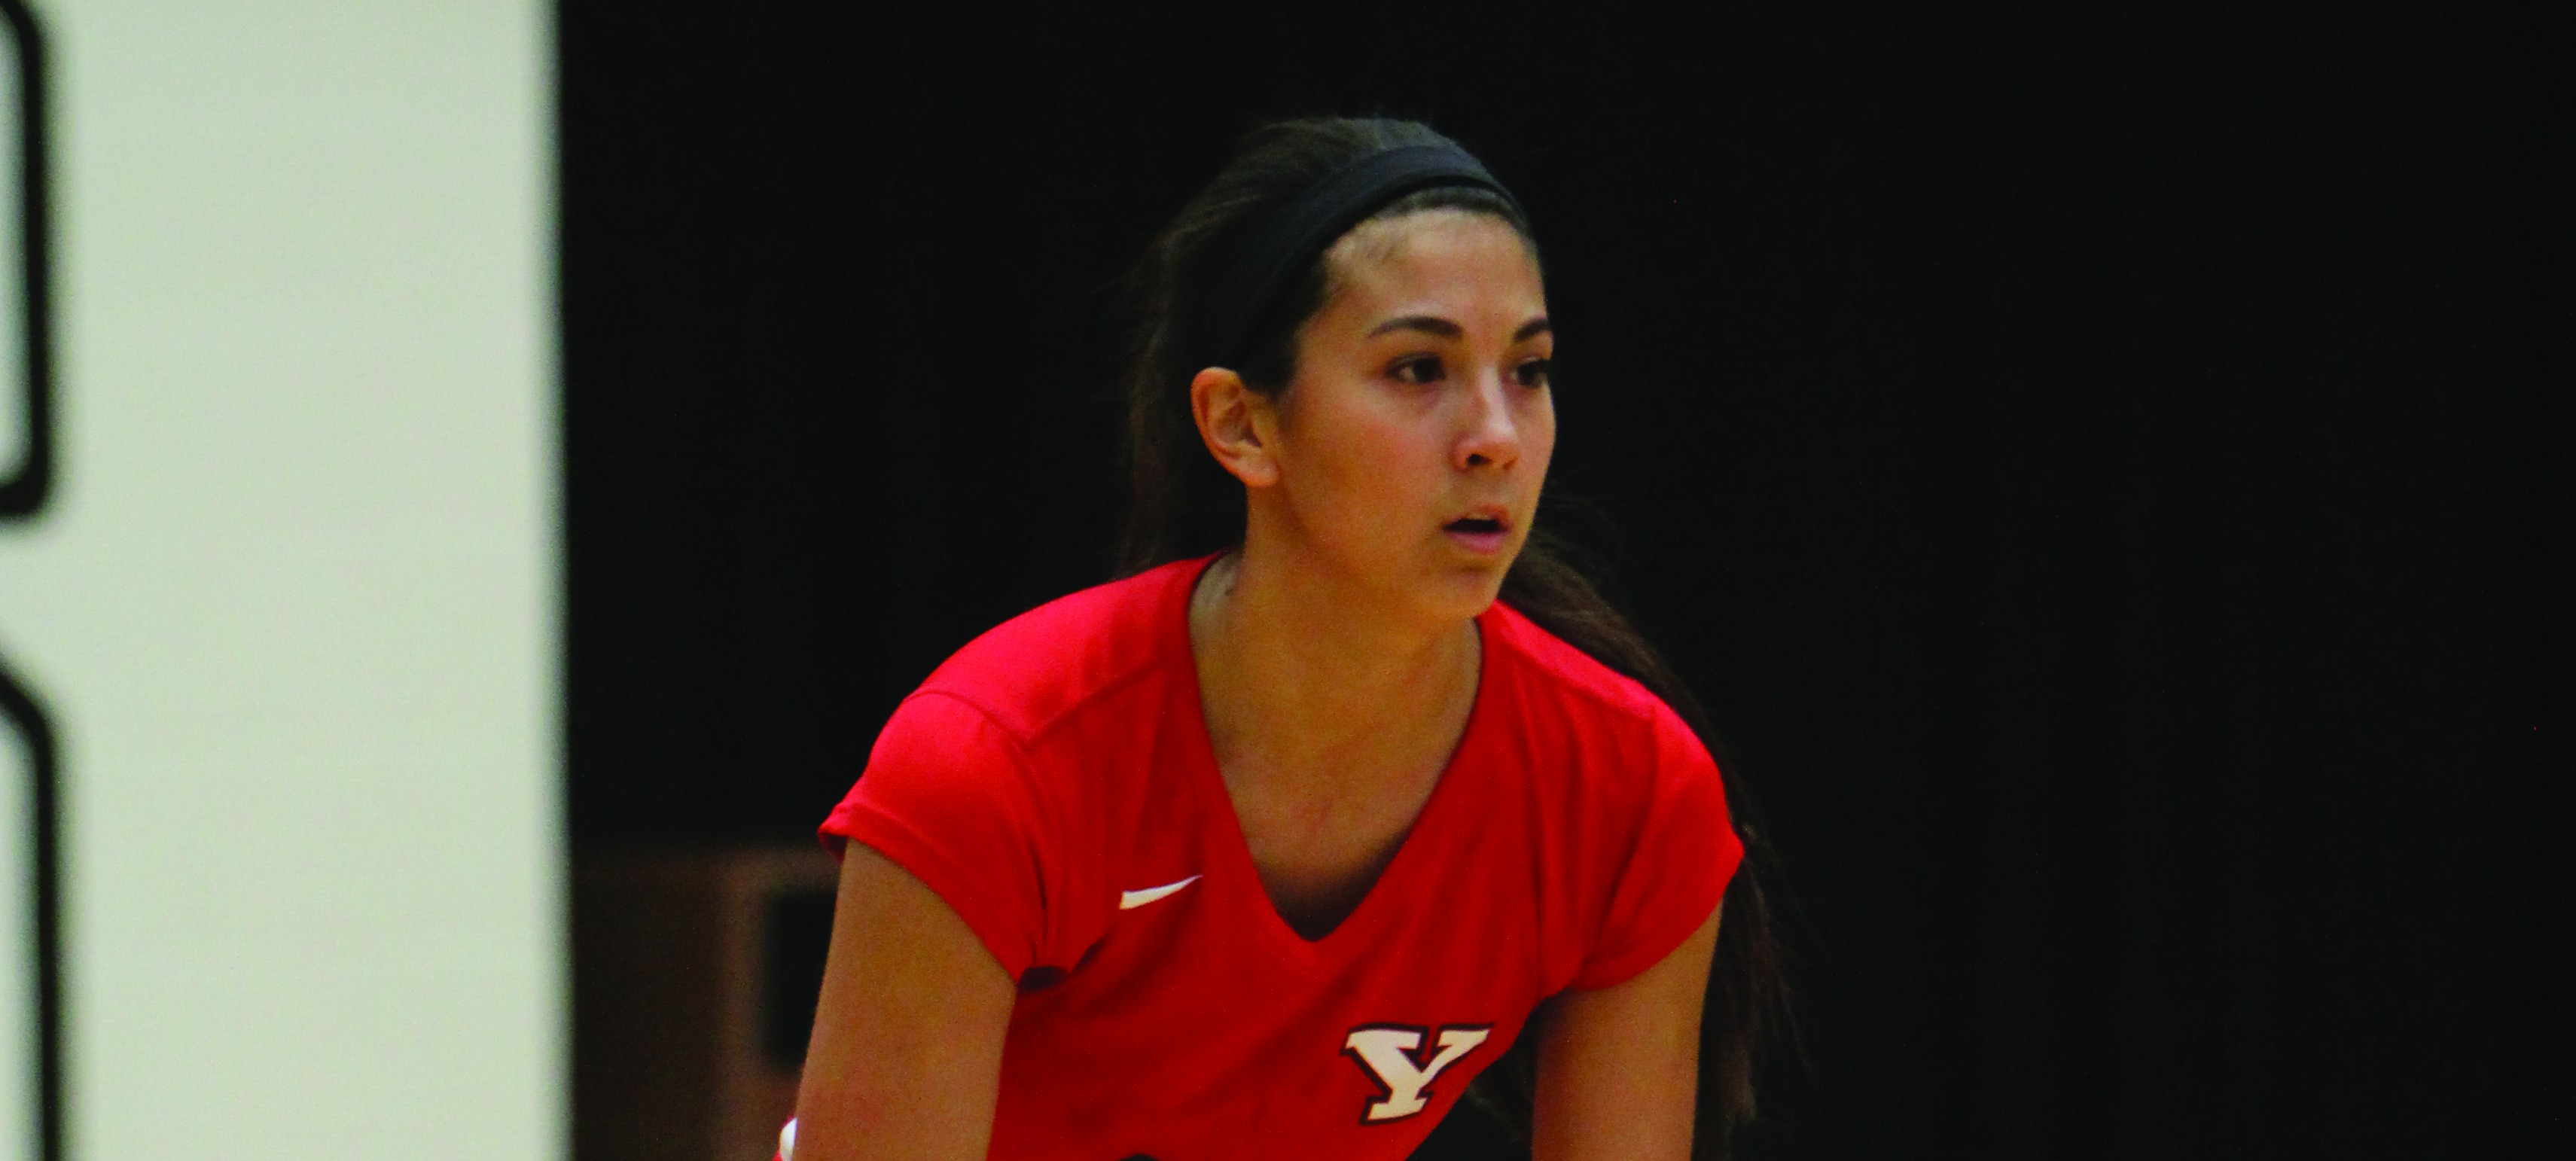 Sophomore setter Val Jeffery tried out for the United States' Volleyball team from Feb. 20-22. Jeffery recorded 1099 assists last season, the most assists by a Penguin since the 2007 season. Photo by Dustin Livesay/ The Jambar.